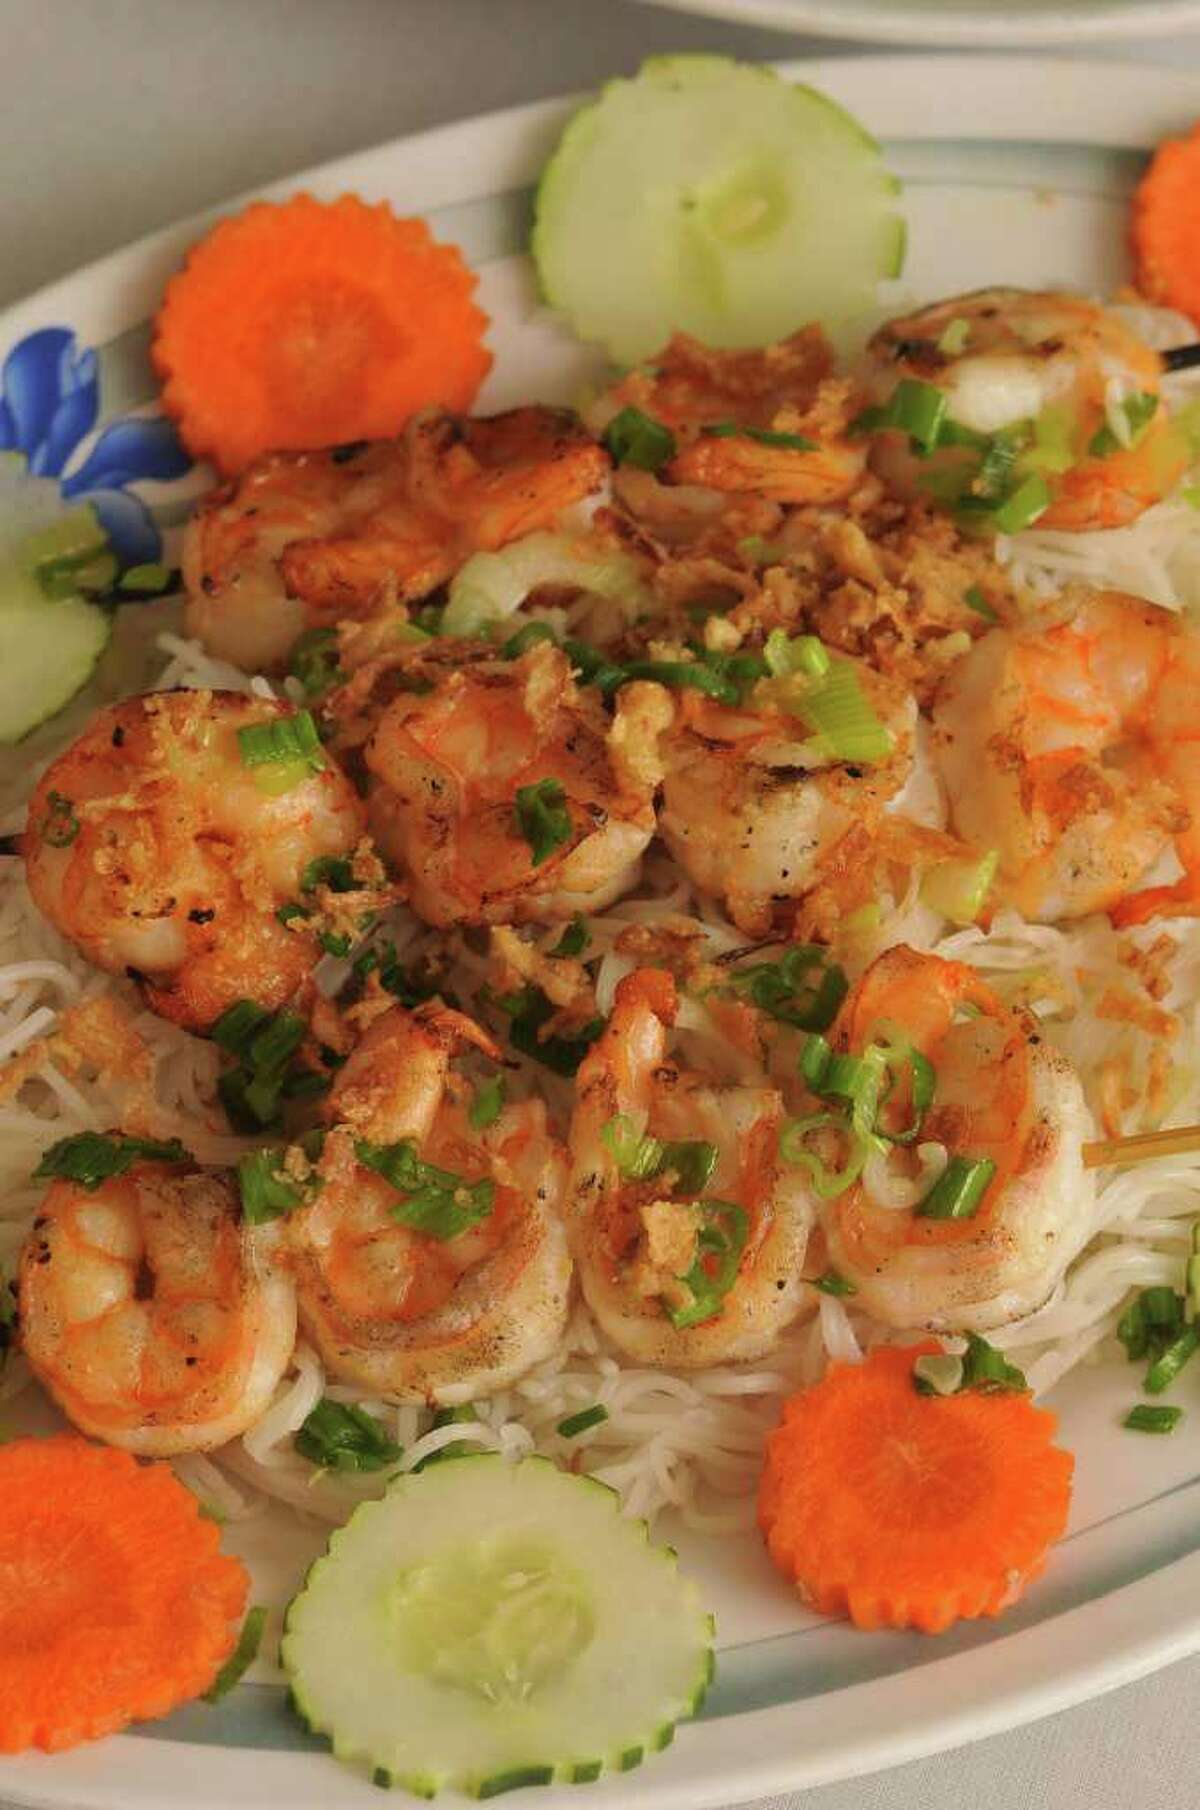 Tom Nuong (grilled shrimp) from Viet-Nam Restaurant at 3244 Broadway.